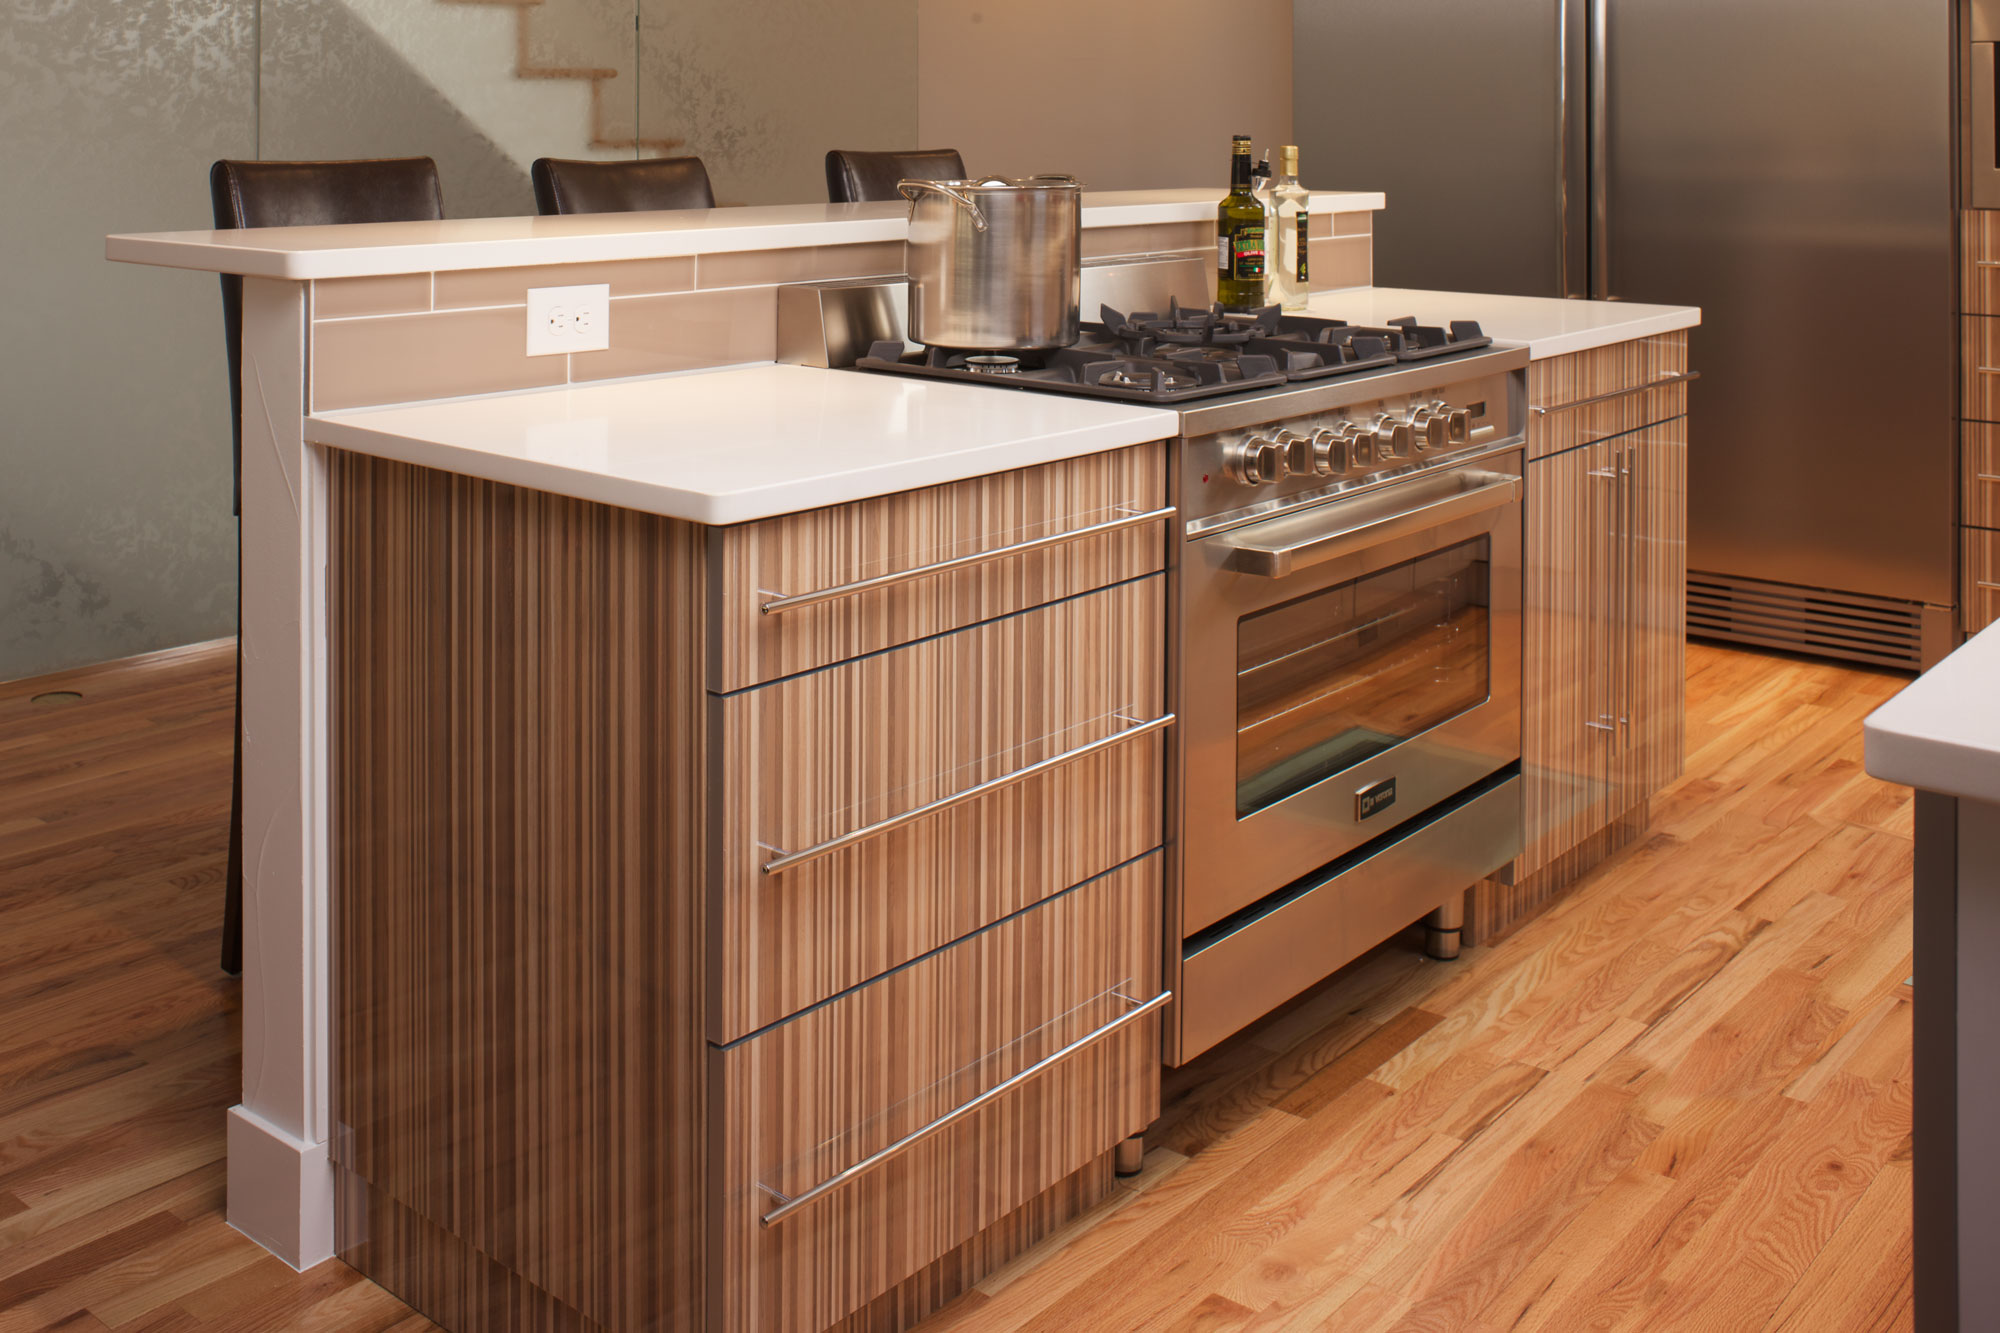 Garfield-87-&-81-Kitchens-1032.jpg